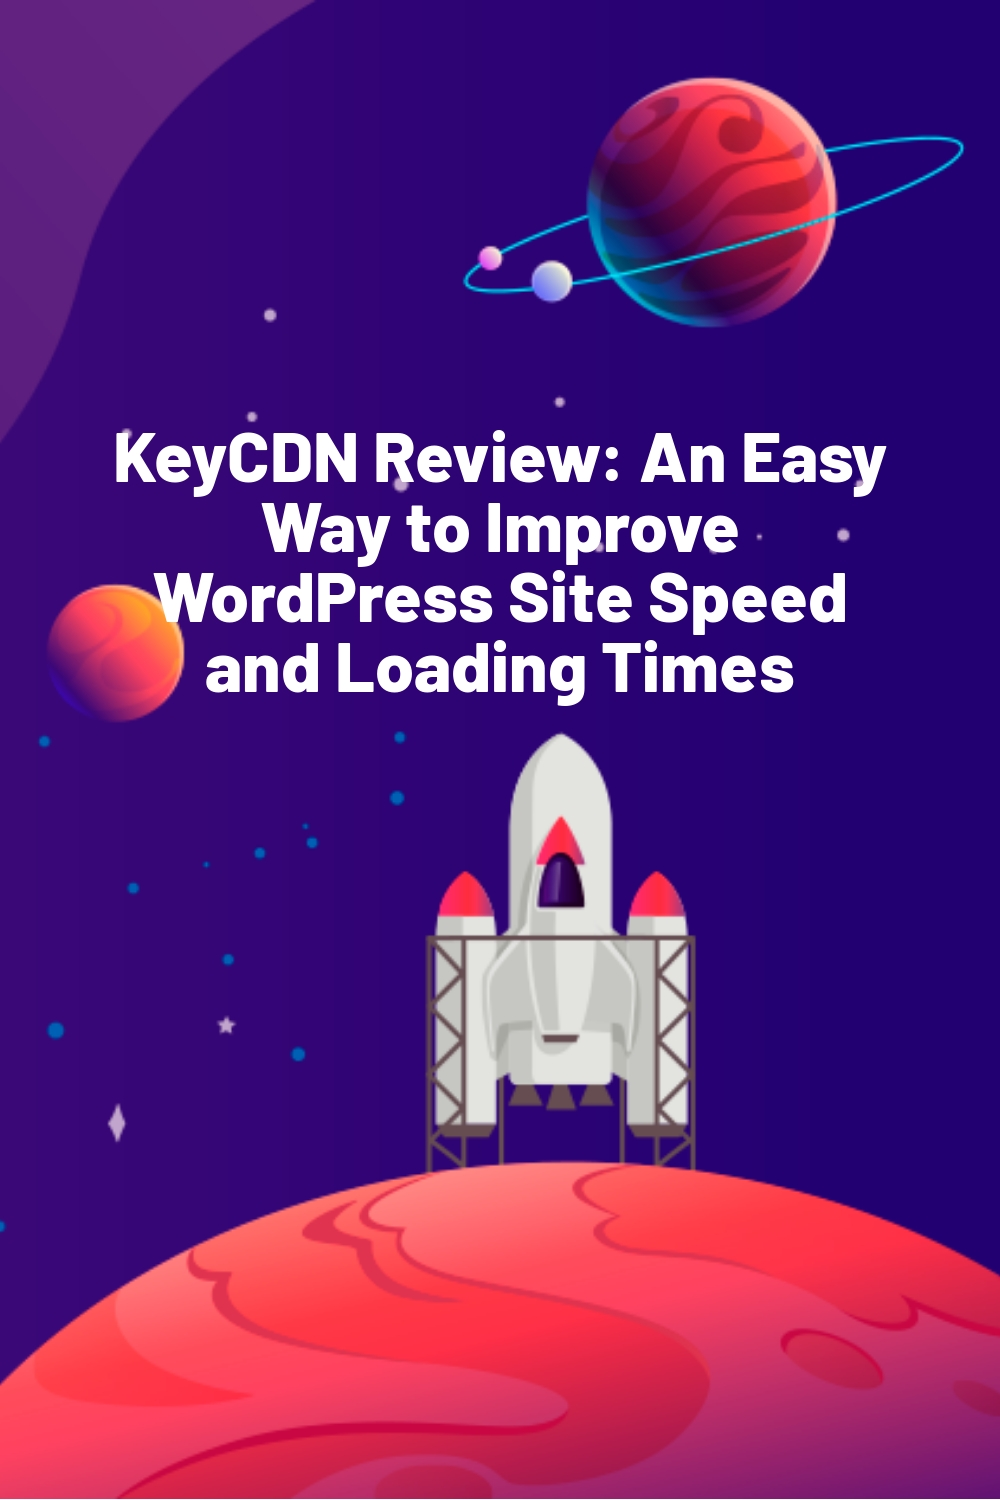 KeyCDN Review: An Easy Way to Improve WordPress Site Speed and Loading Times